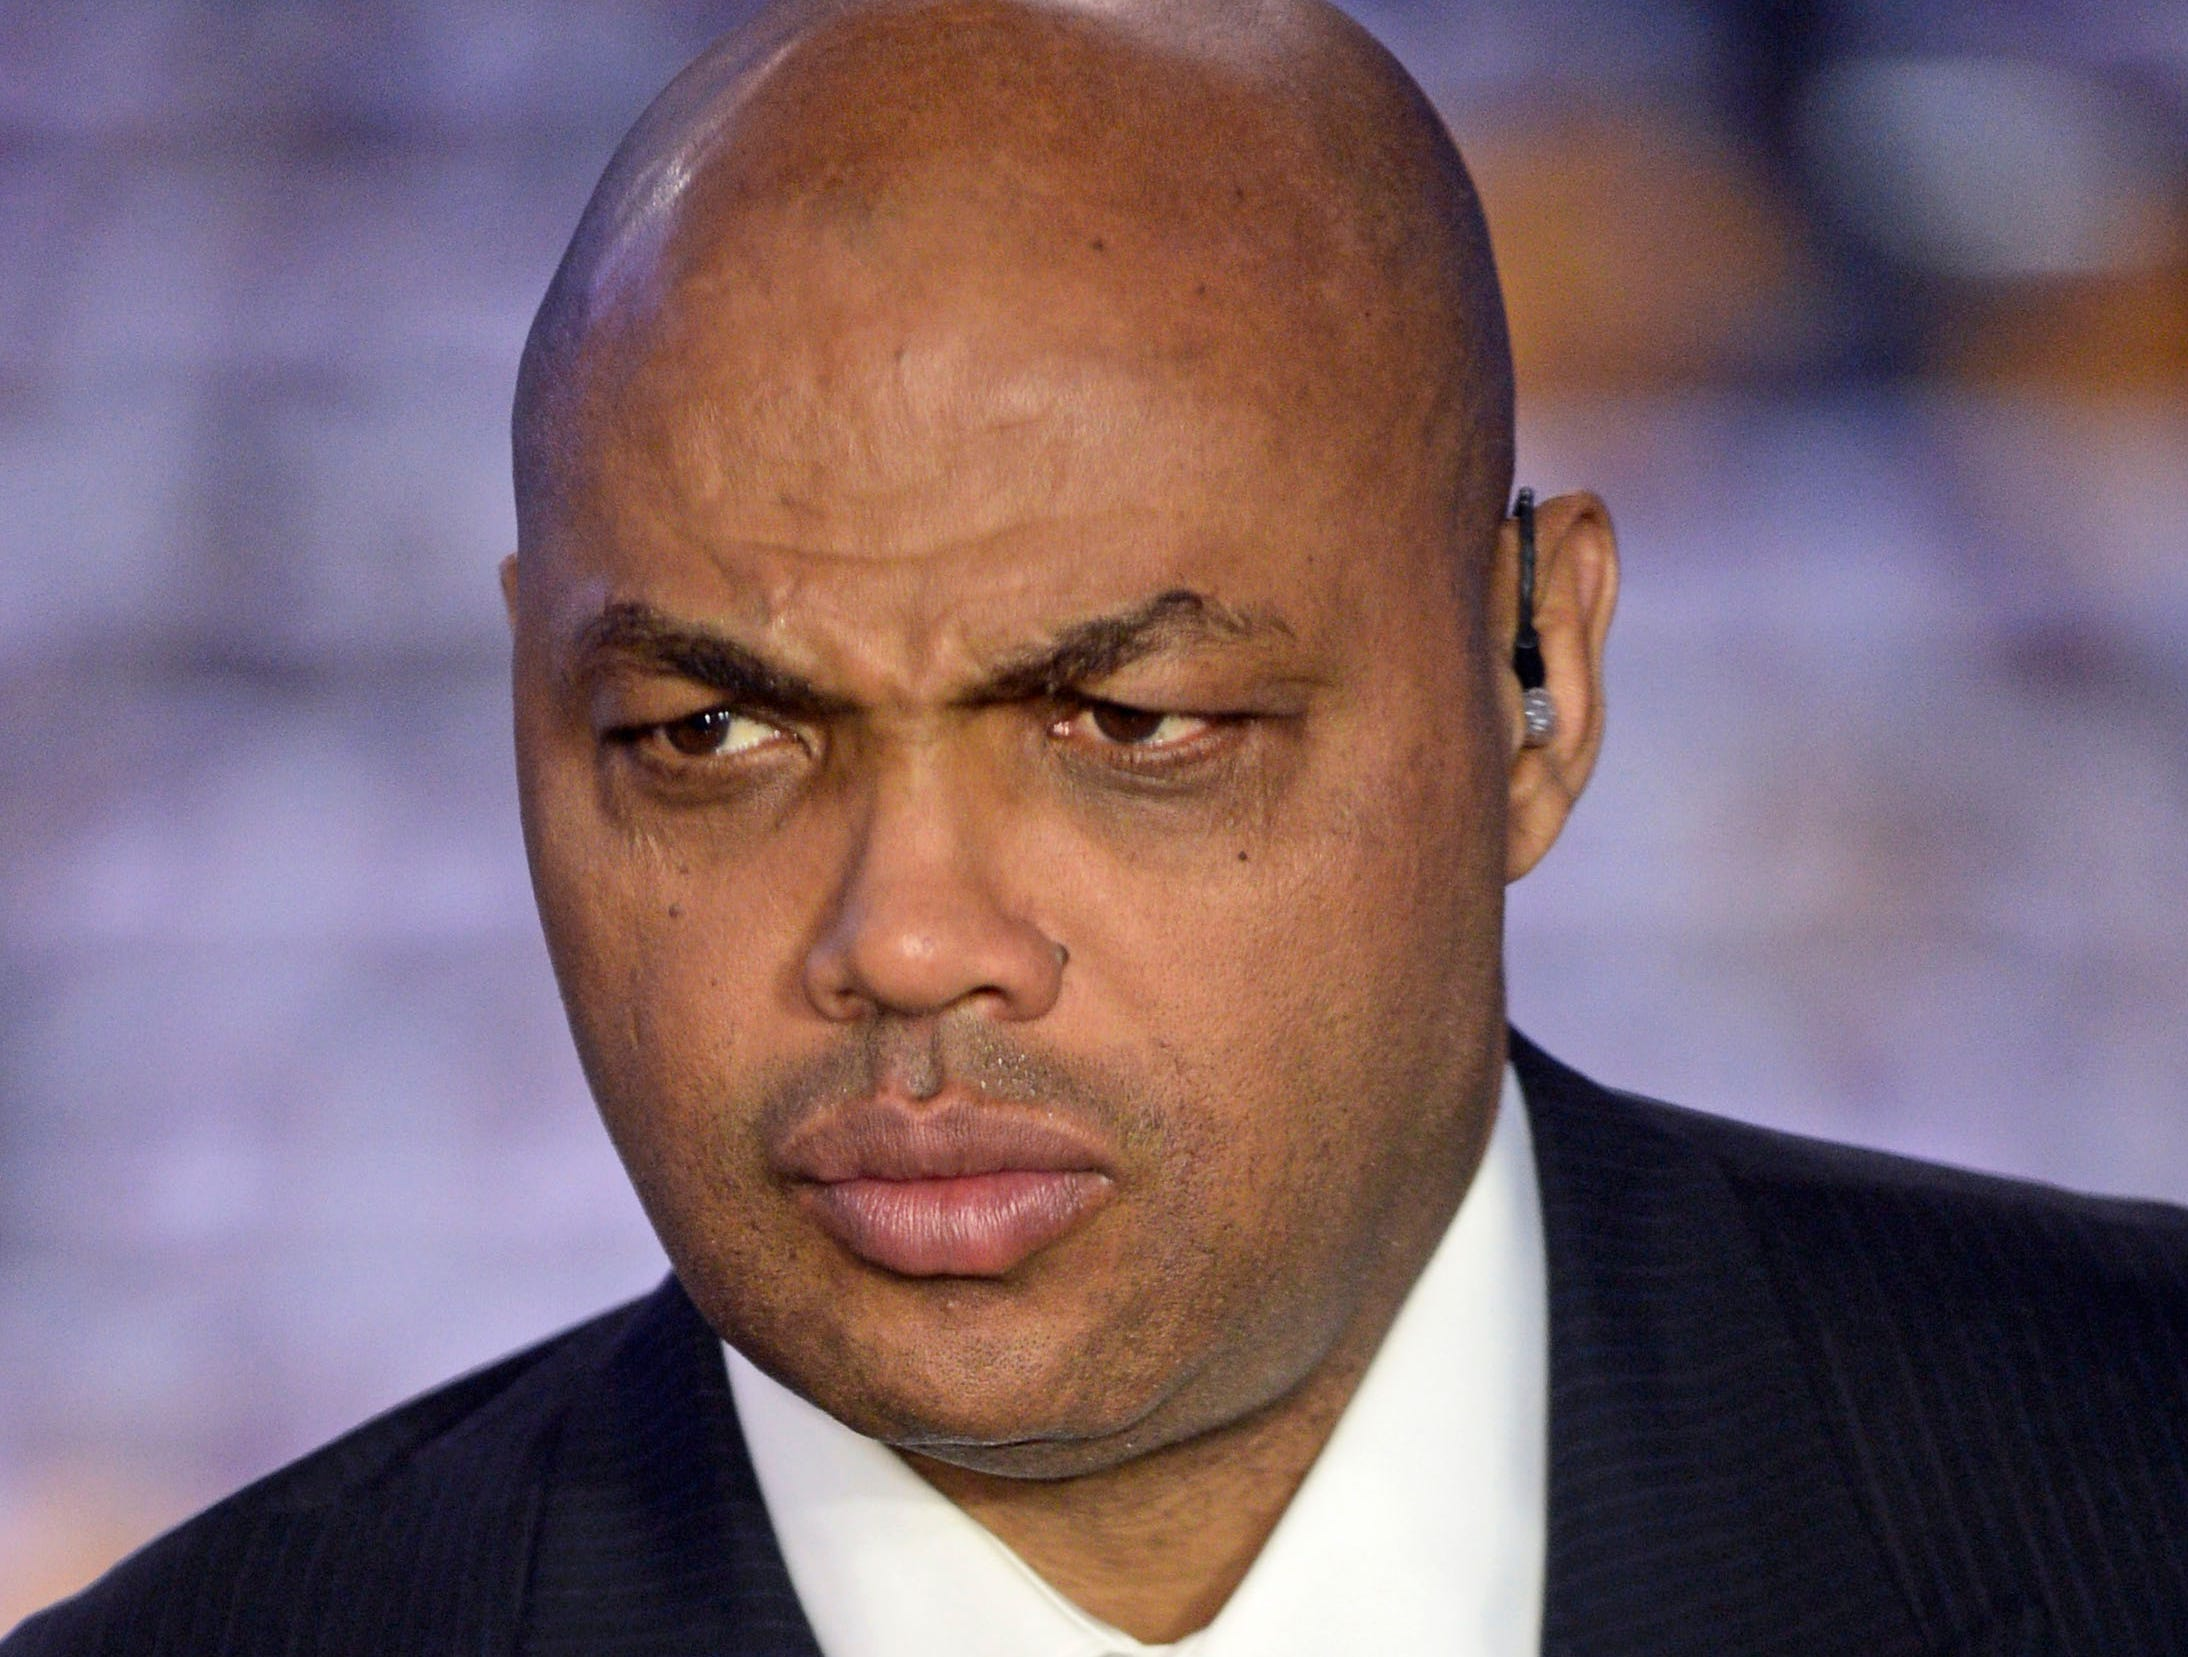 May 24, 2016; Oklahoma City, OK, USA; TNT commentator Charles Barkley before the game between the Golden State Warriors and Oklahoma City Thunder in game four of the Western conference finals of the NBA Playoffs at Chesapeake Energy Arena. Mandatory Credit: Mark D. Smith-USA TODAY Sports